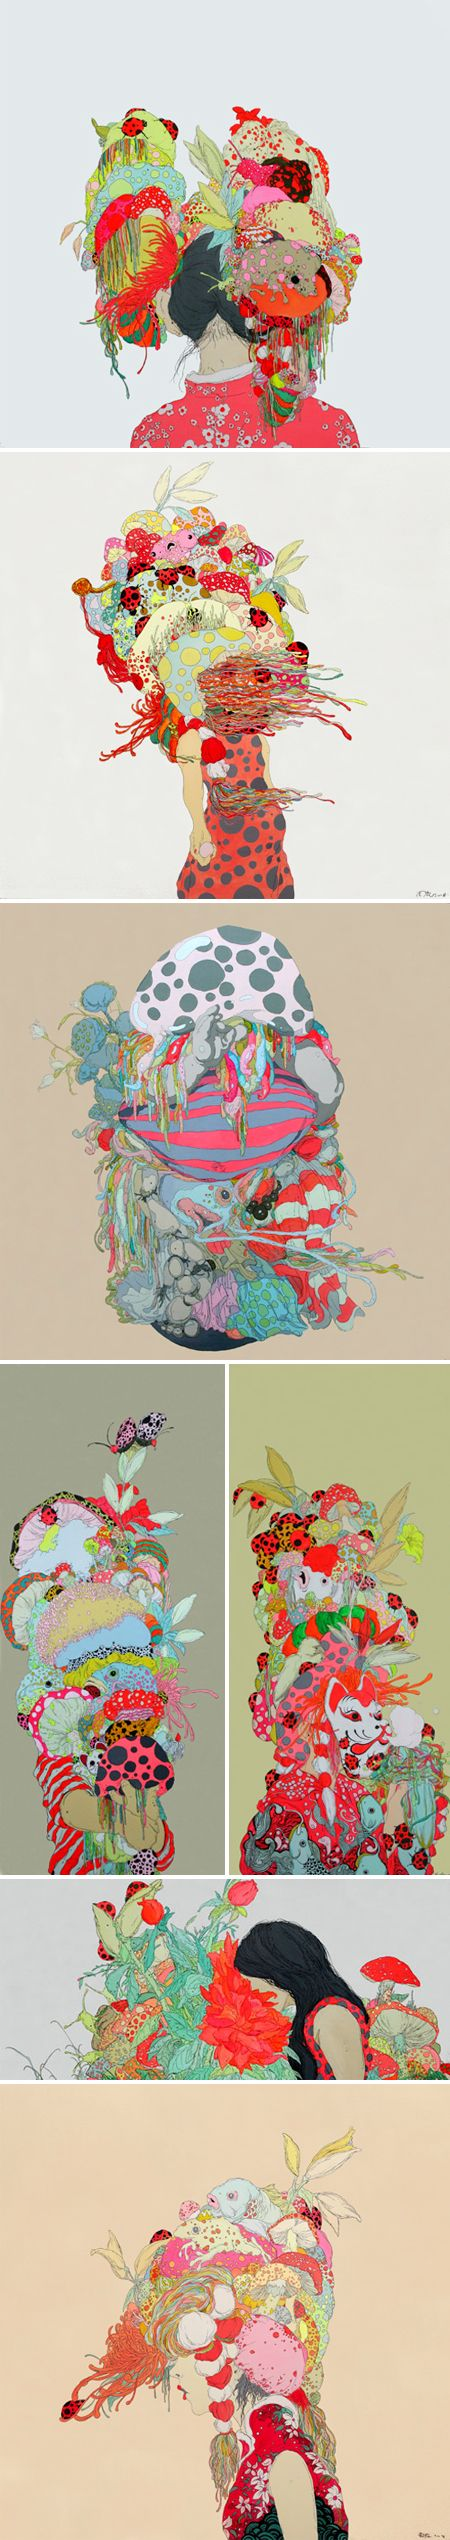 paintings by zhou fan - collections of pattern and colour